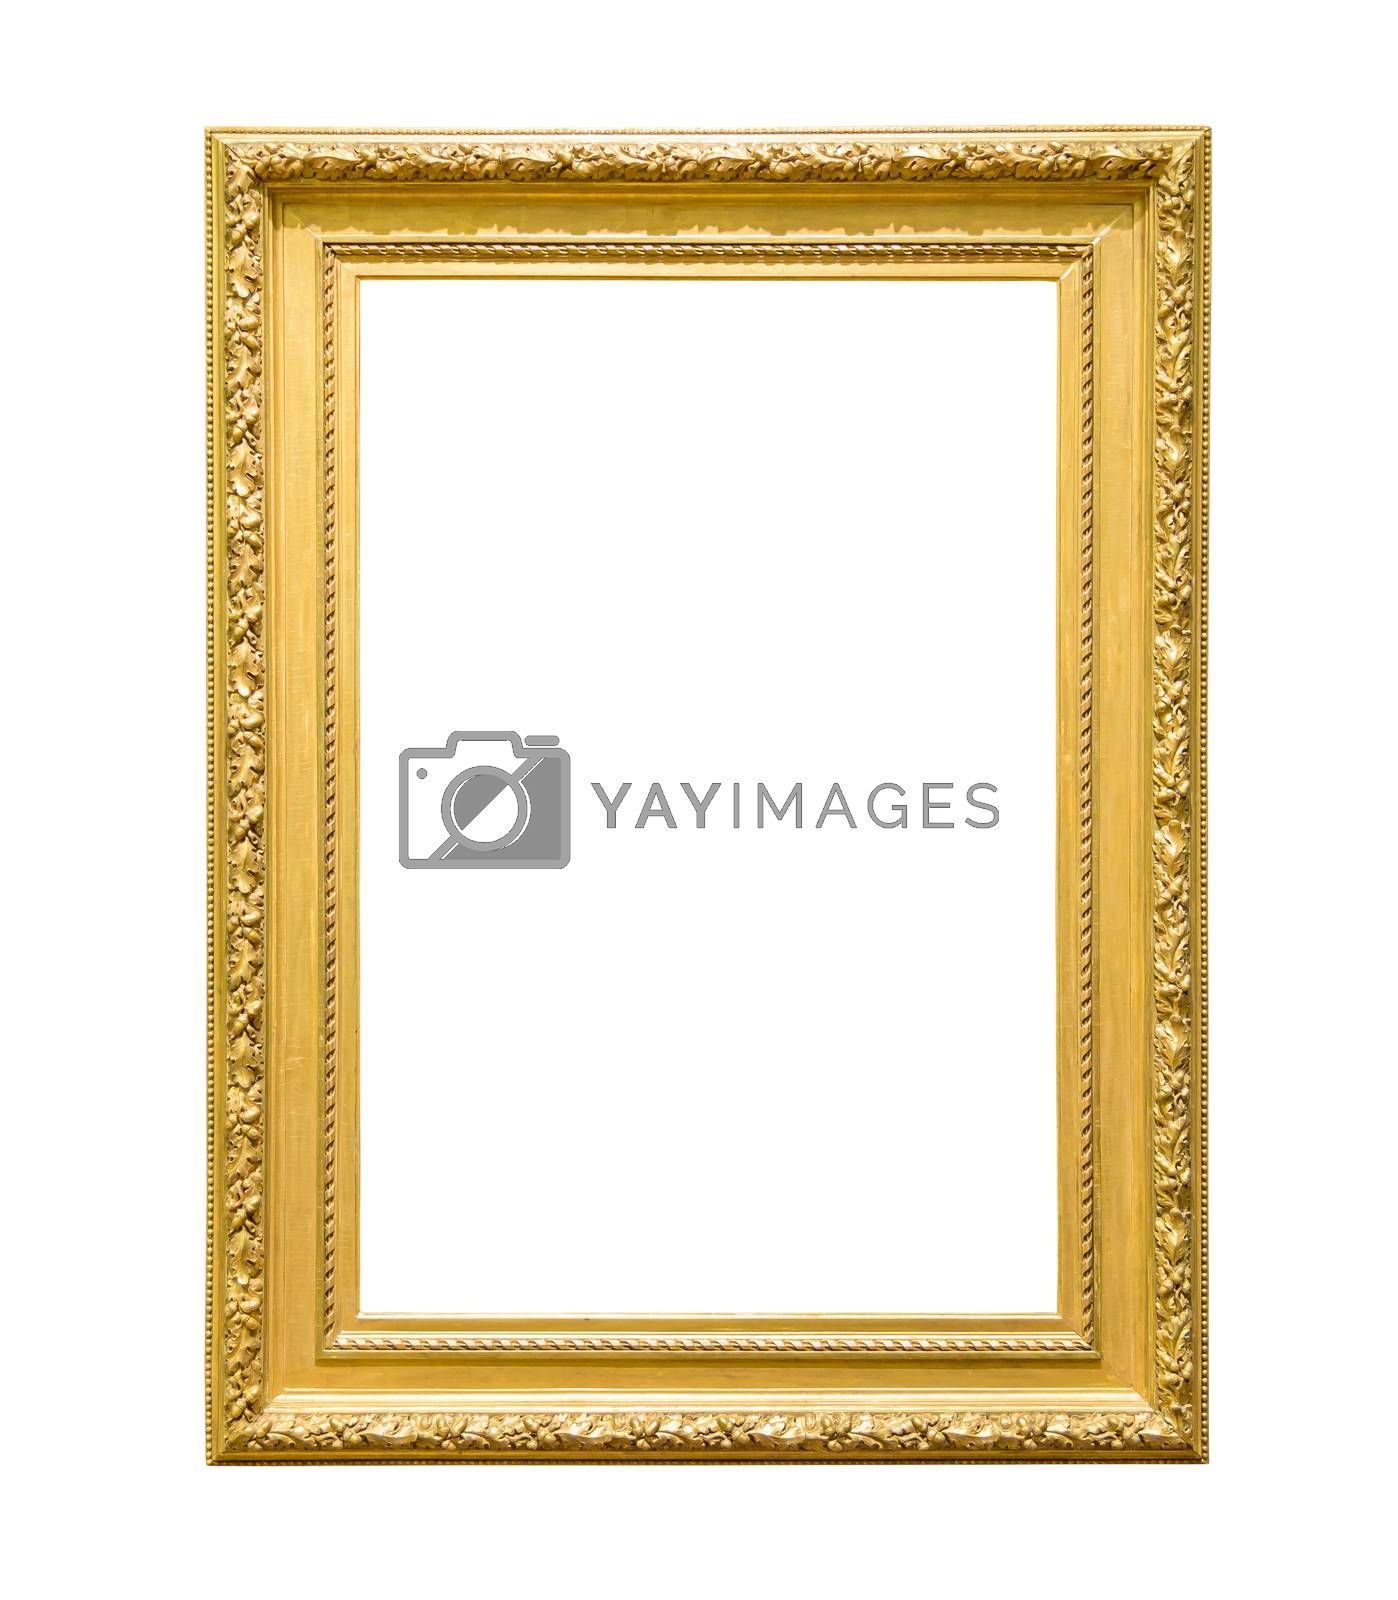 Royalty free image of Portrait golden decorative picture frame on white background by mkos83